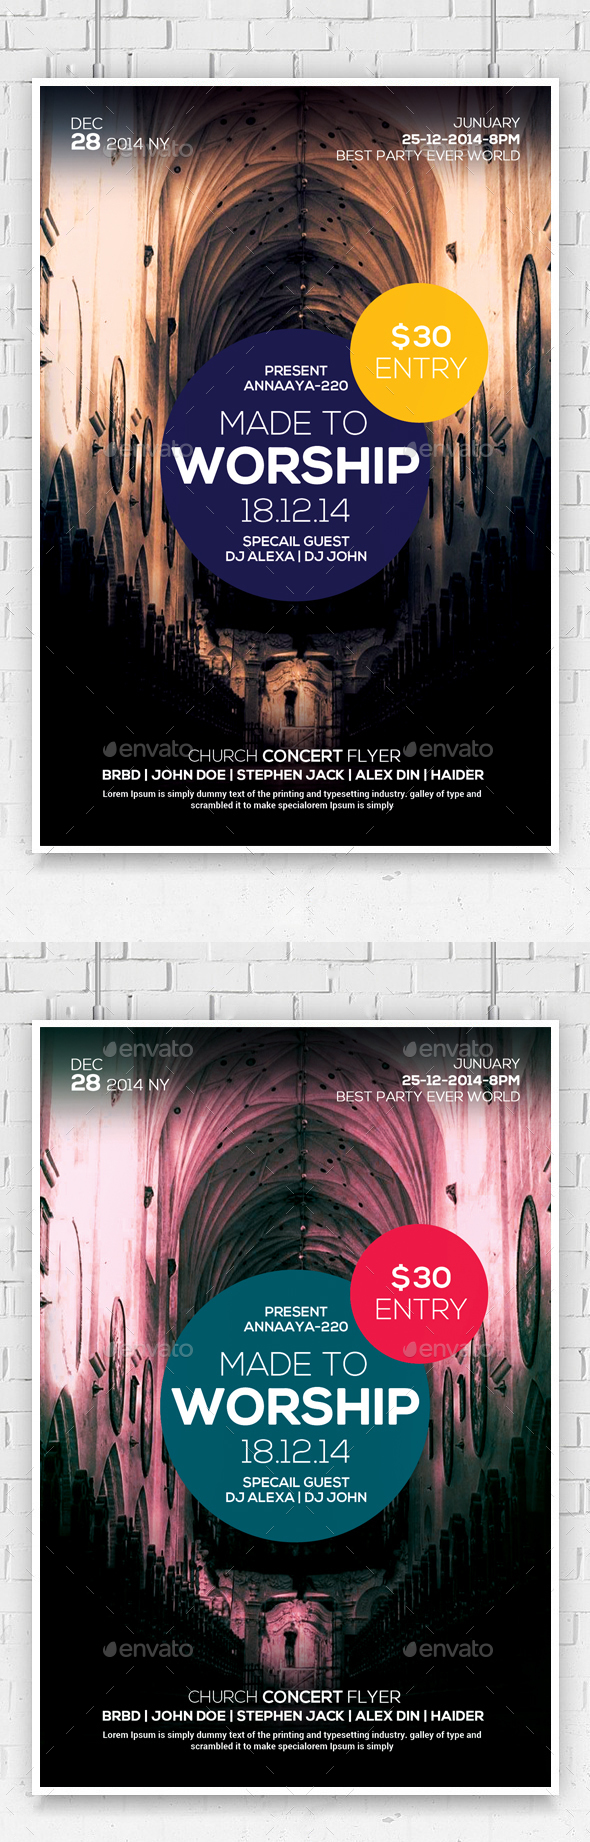 church concert flyer graphics designs templates page 43